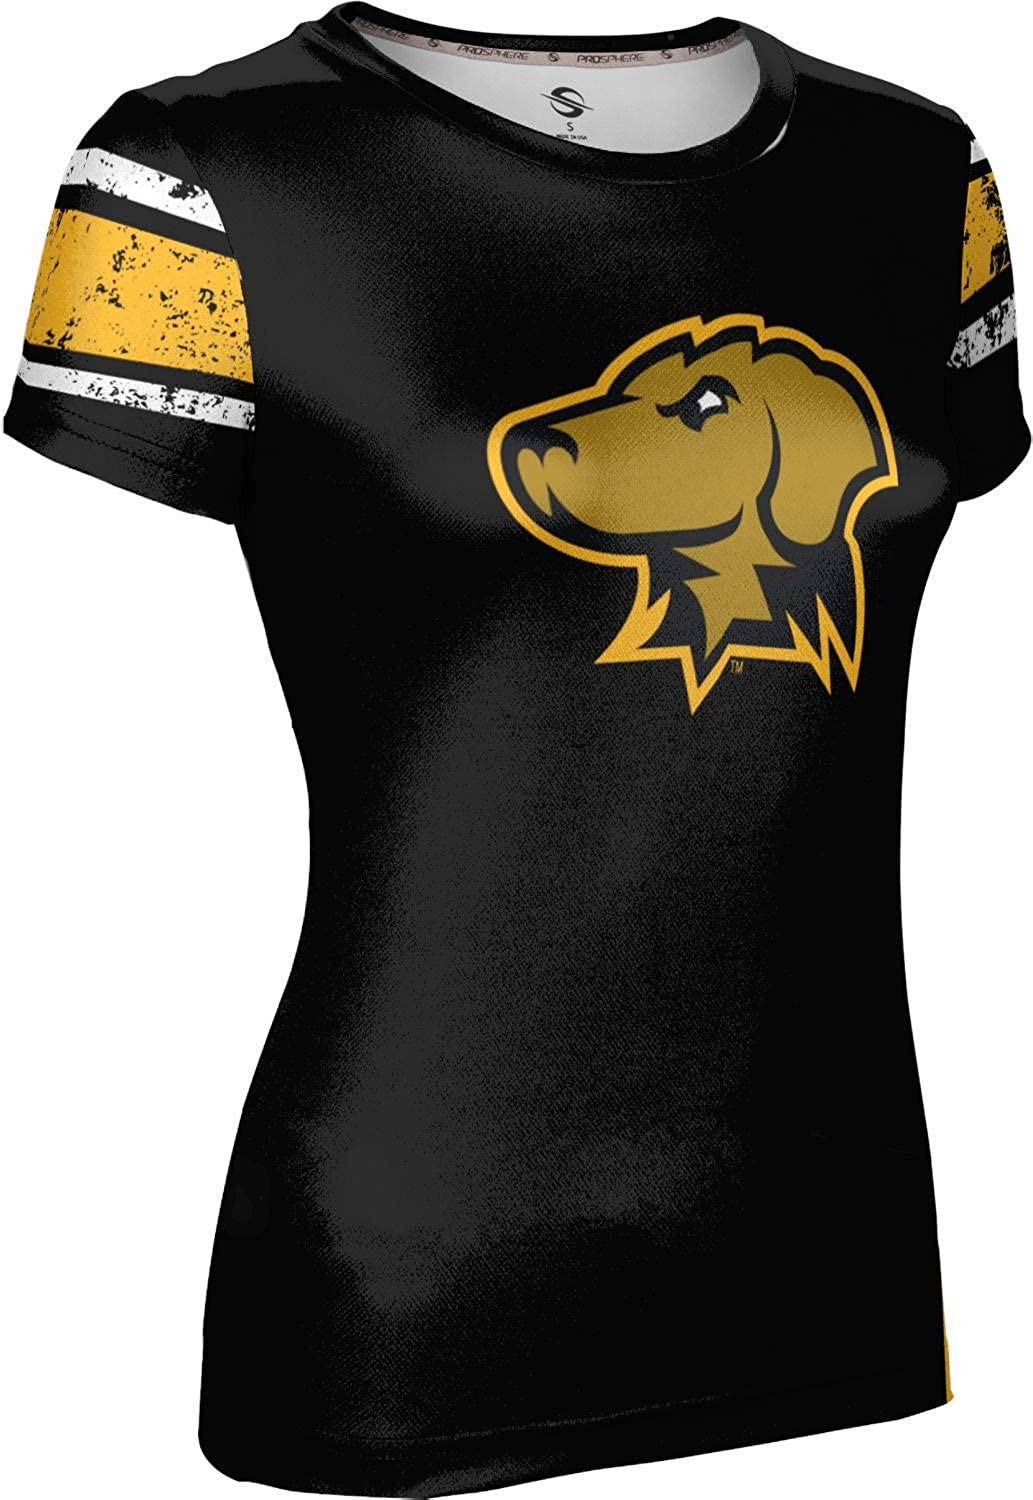 End Zone ProSphere University of Maryland Baltimore County Girls Performance T-Shirt